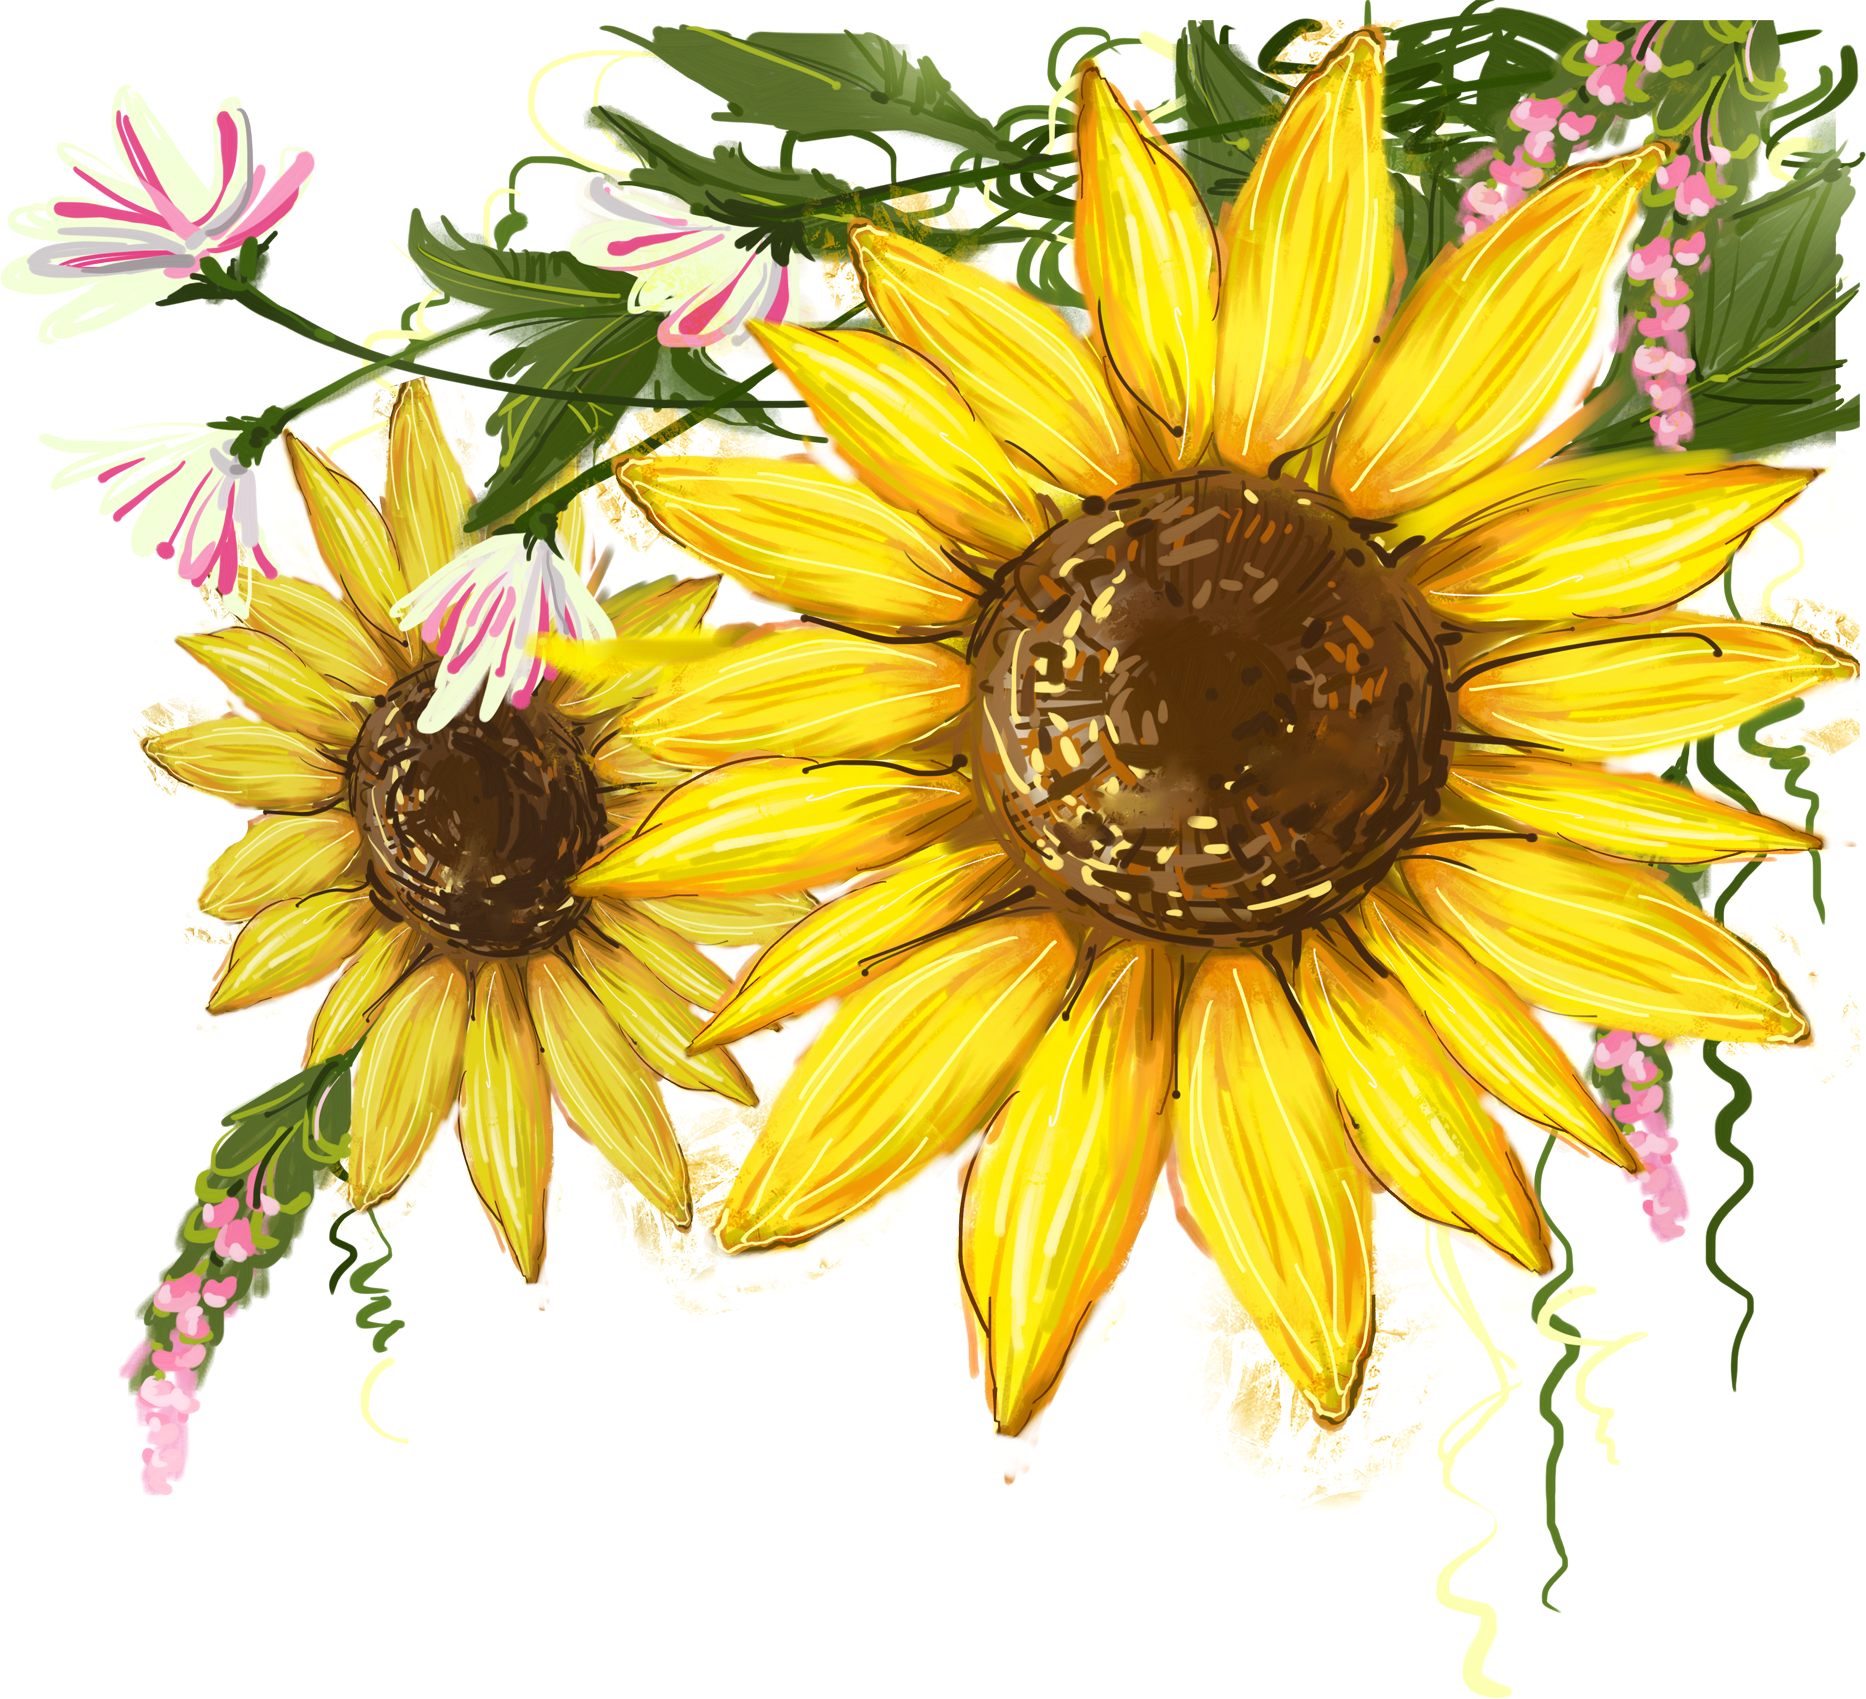 Common Sunflower Png - Common sunflower Clip art Image Watercolor   Sunflower PNG images ...